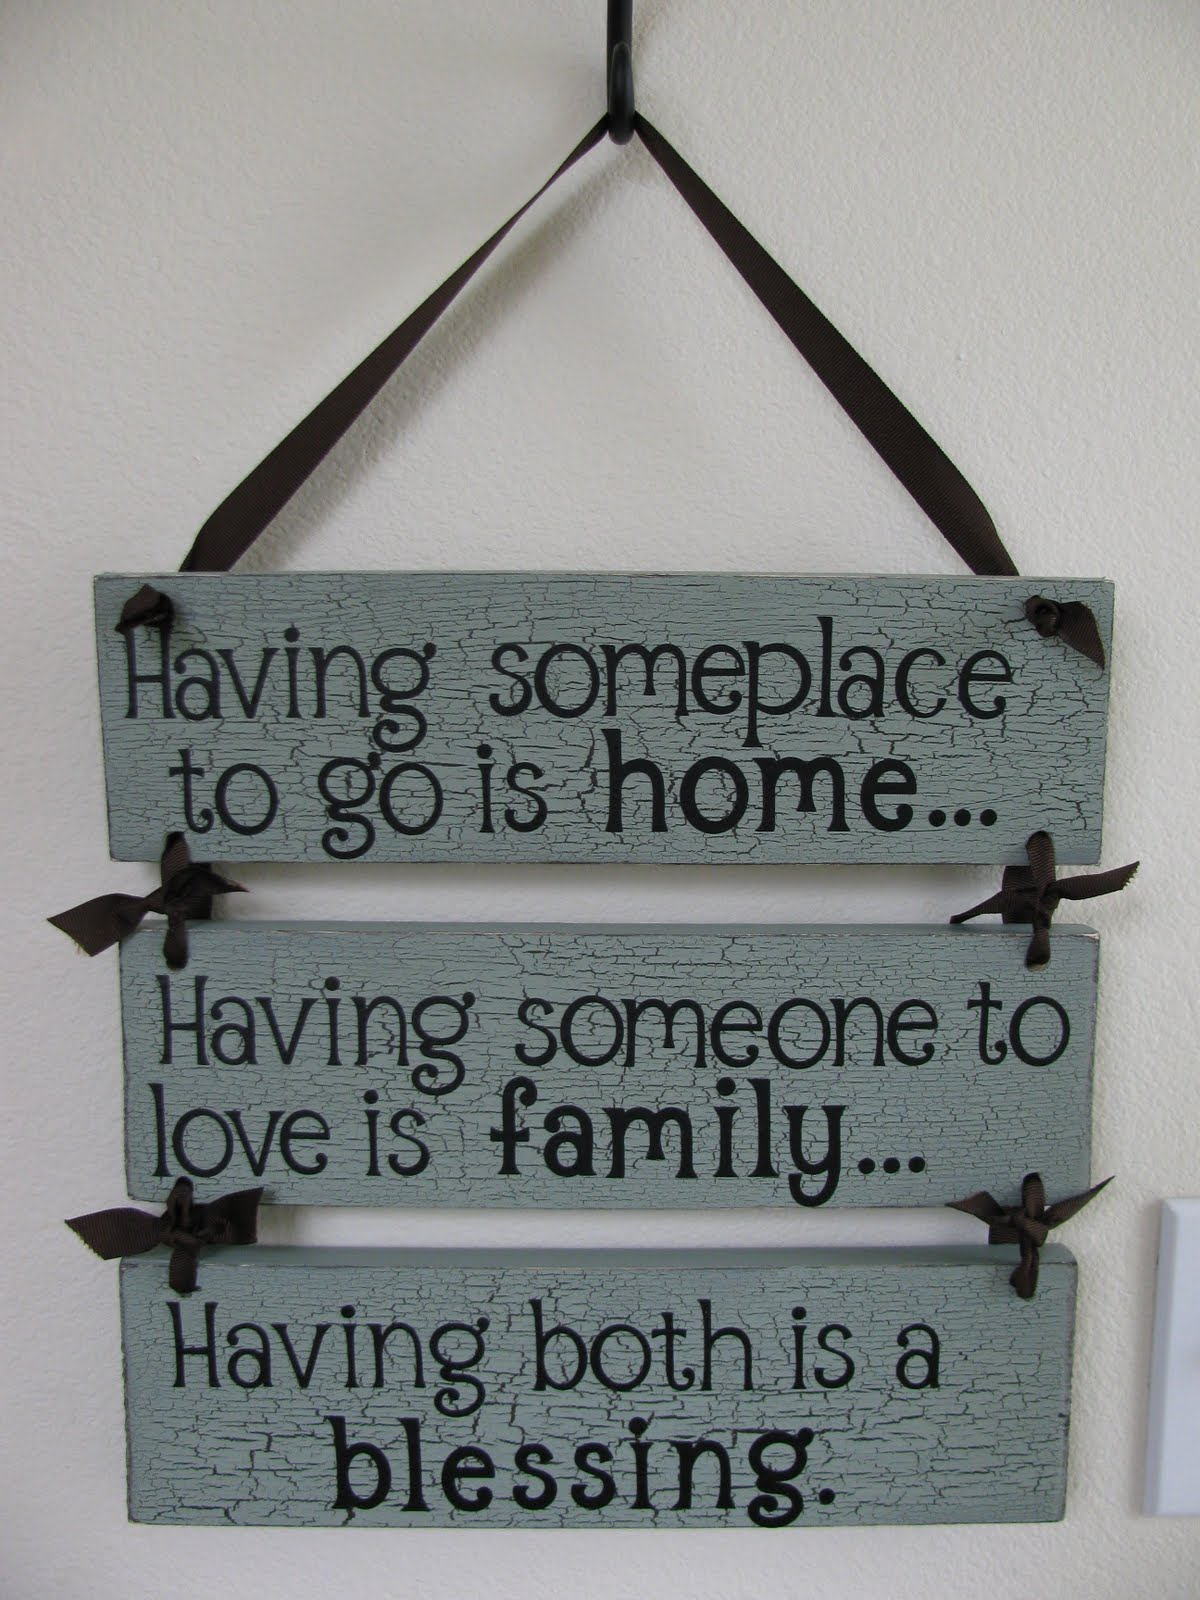 Wall Hanging Quotes My Crafty Playground: Wood Wall Hanging  Having somewhere to go is  Wall Hanging Quotes